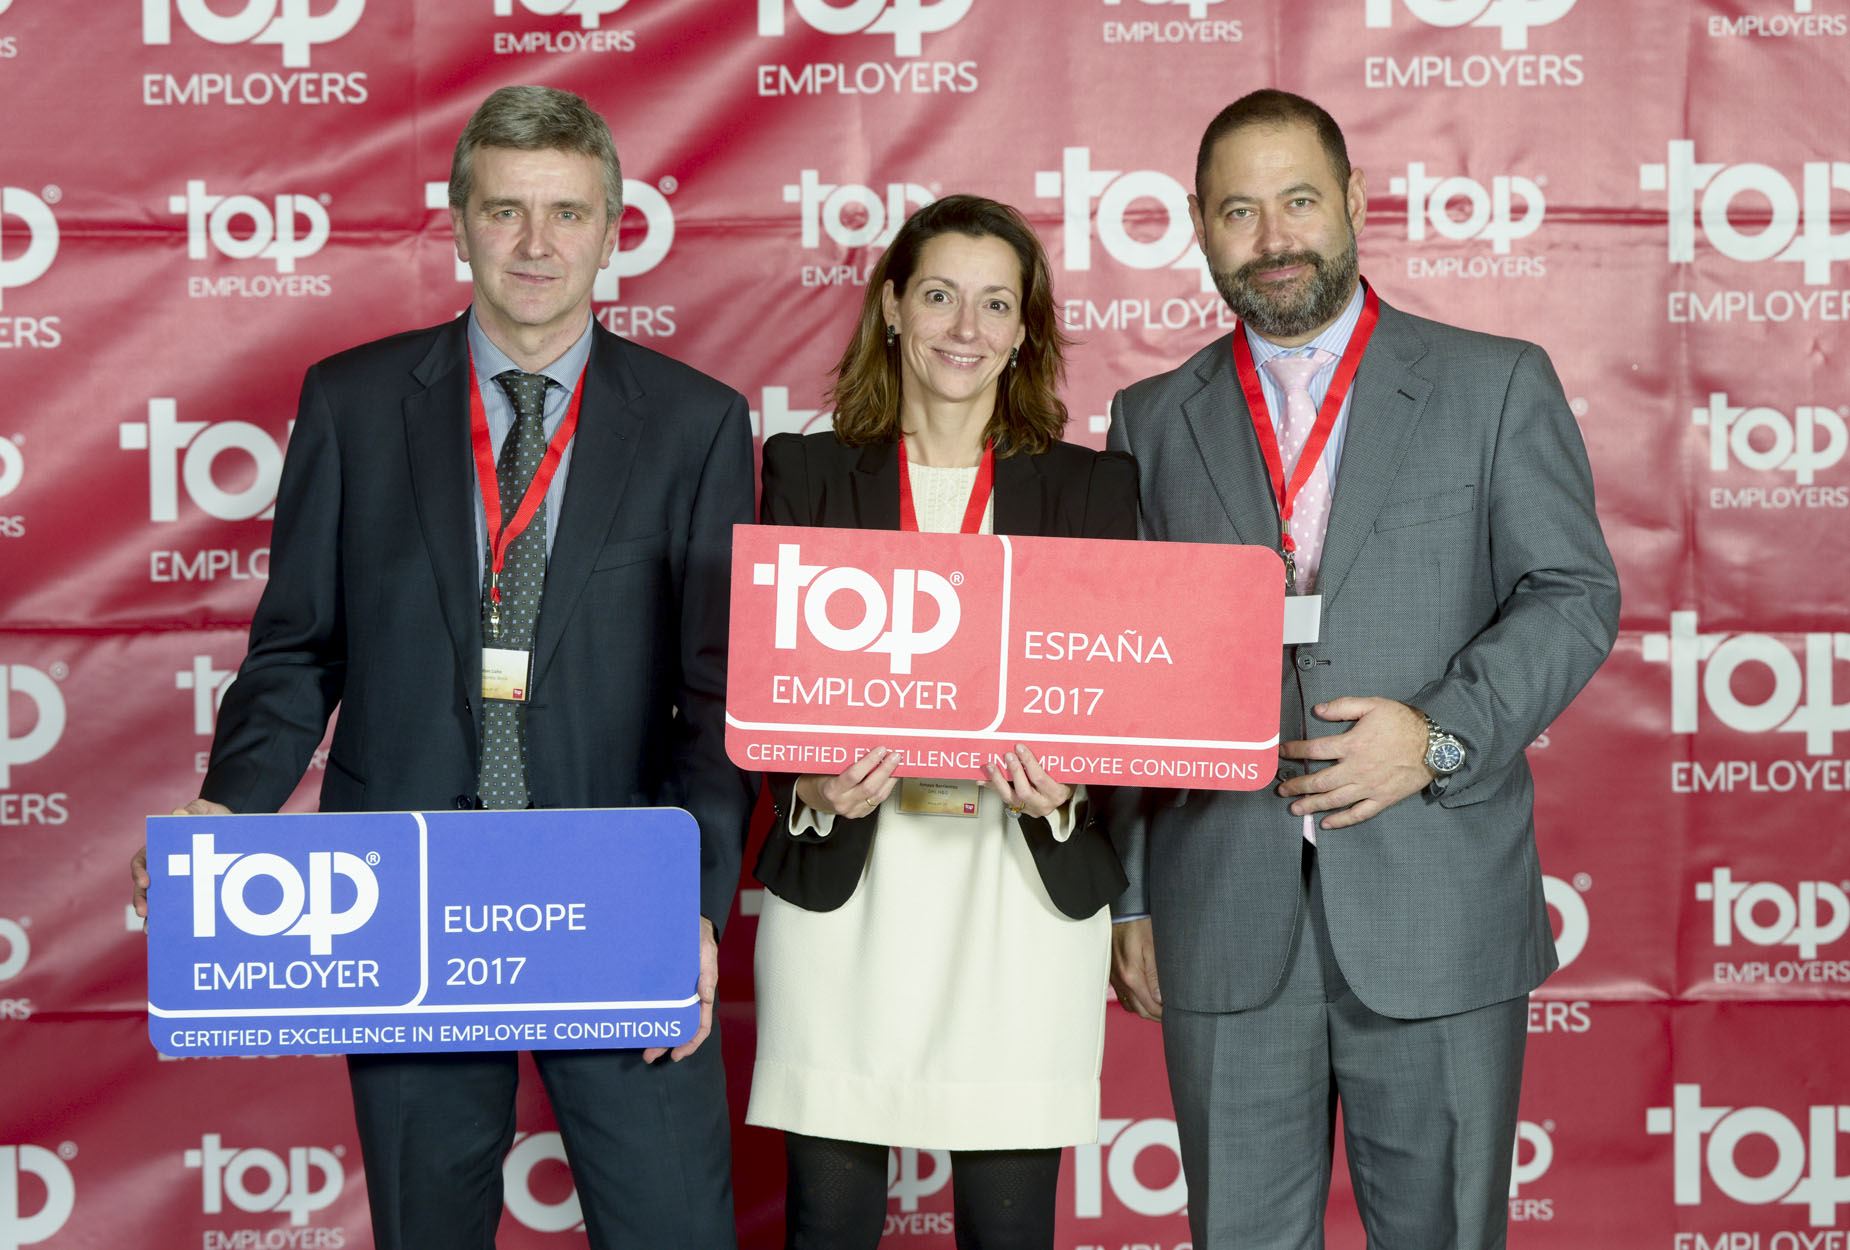 Entrega de Premios Top Employers a DHL